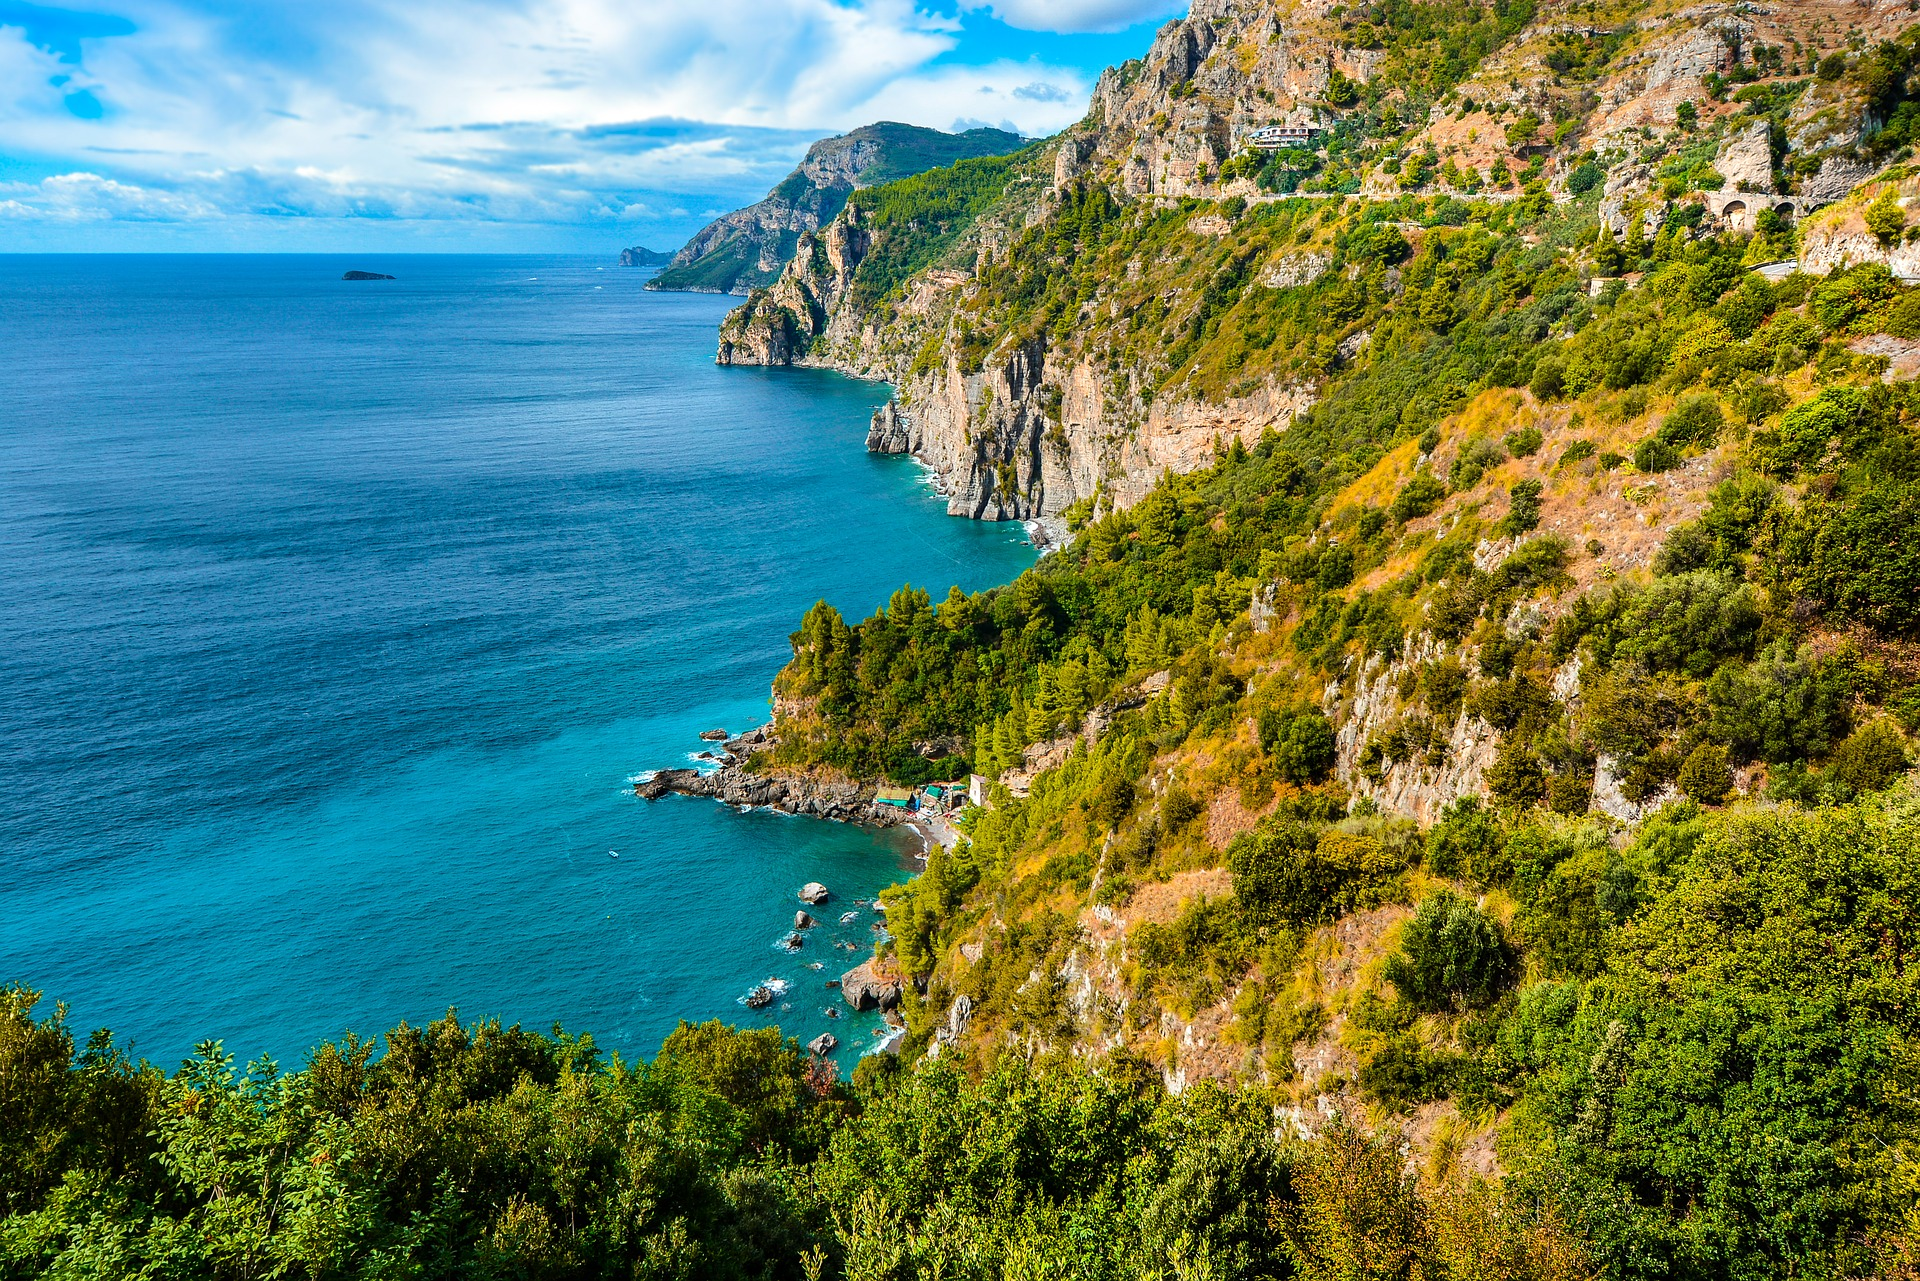 trekking-in-sorrento-and-amalfi-coast